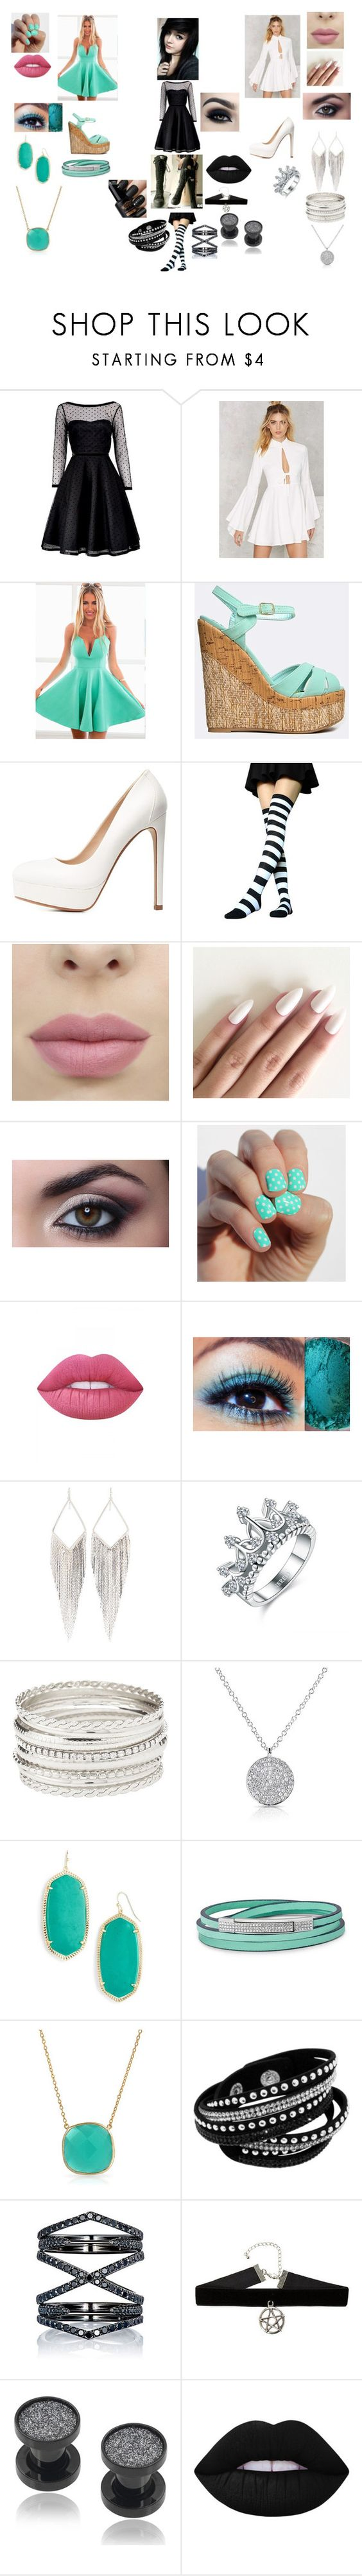 """""""The Outcast"""" by fallenangel889 ❤ liked on Polyvore featuring beauty, Marc by Marc Jacobs, Nasty Gal, Qupid, Charlotte Russe, Converse, Lime Crime, Jules Smith, Kendra Scott and FOSSIL"""